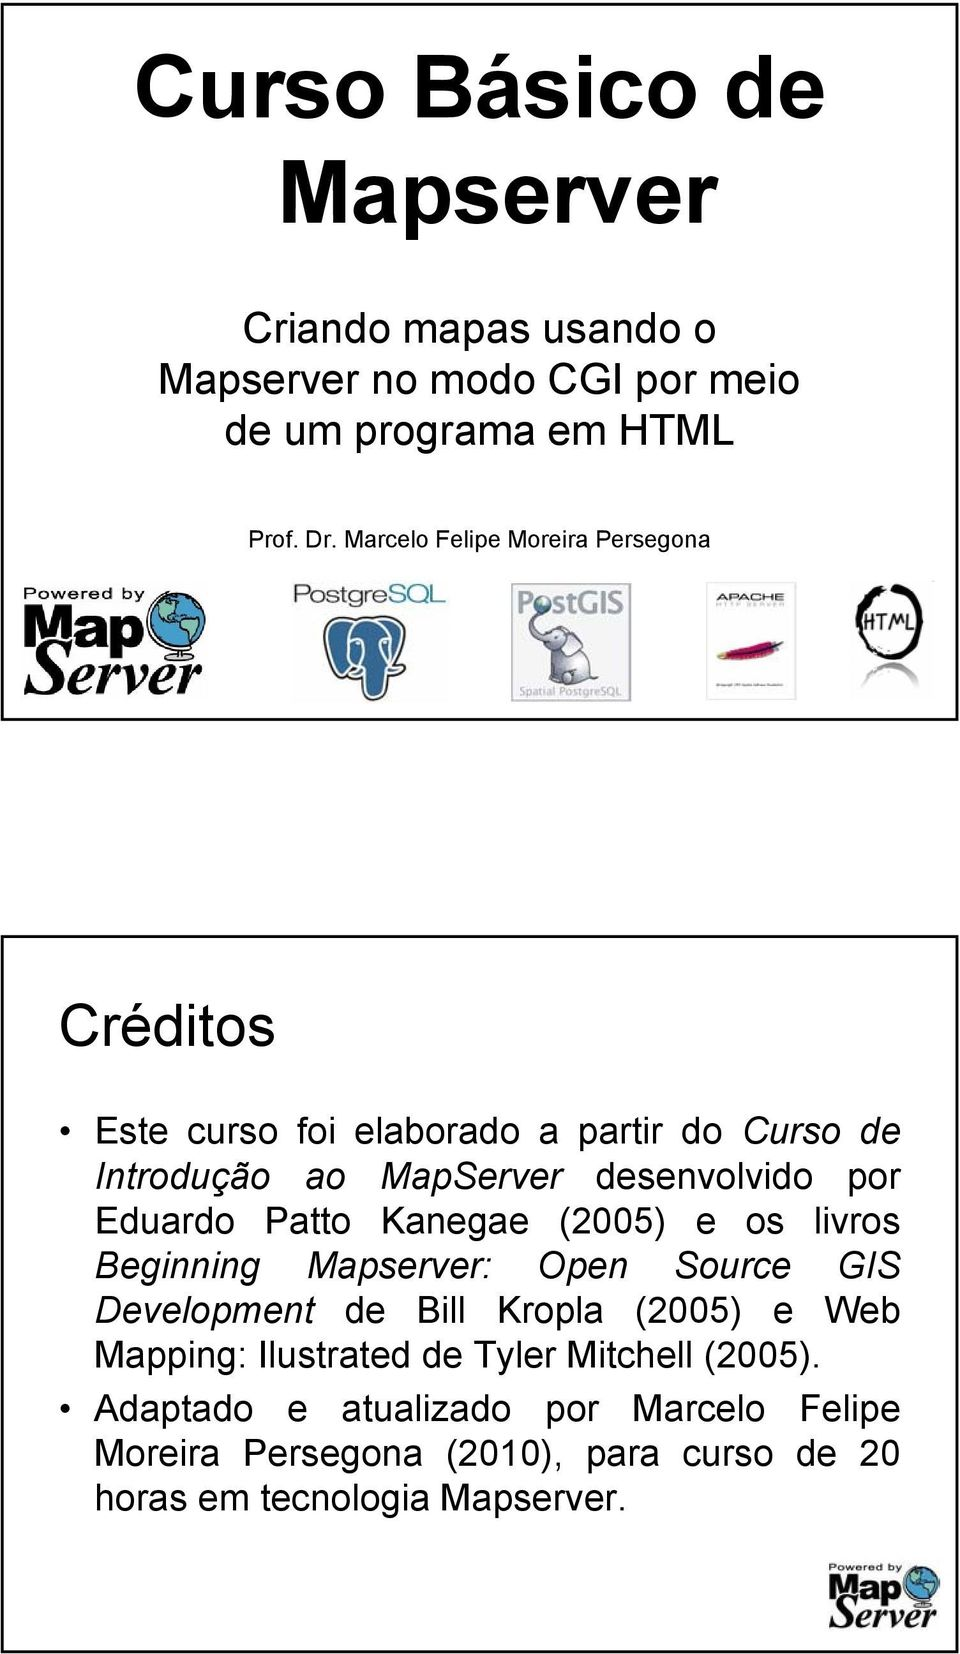 Eduardo Patto Kanegae (2005) e os livros Beginning Mapserver: Open Source GIS Development de Bill Kropla (2005) e Web Mapping: